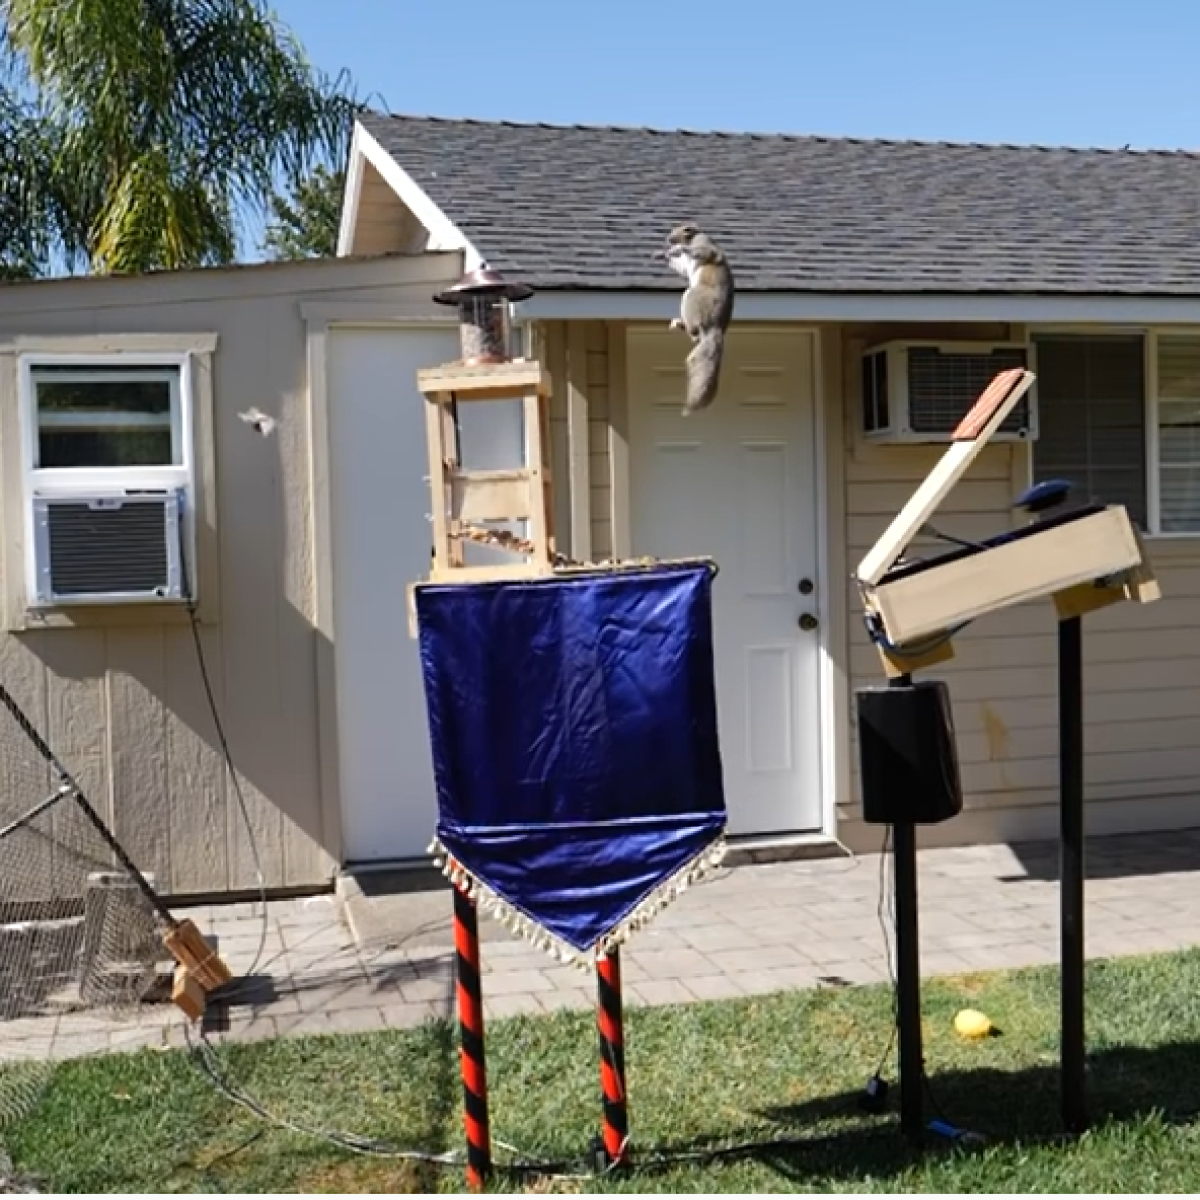 Watch: Former NASA engineer builds the perfect squirrel proof bird feeder